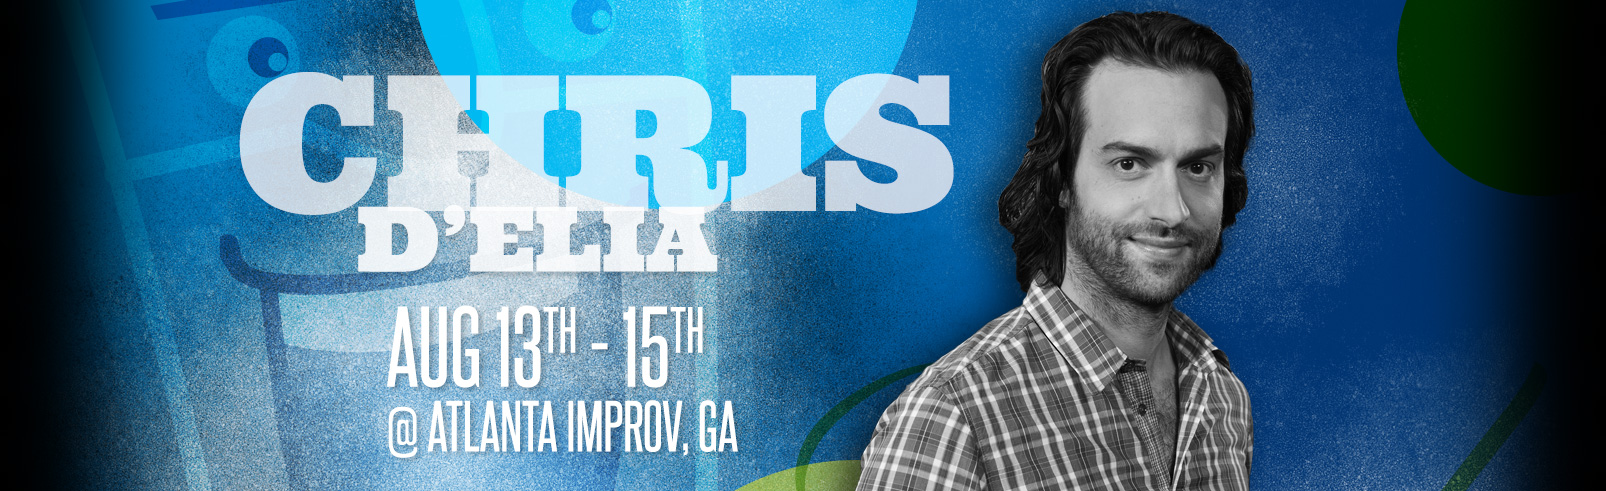 Chris D'Elia @ Atlanta Improv